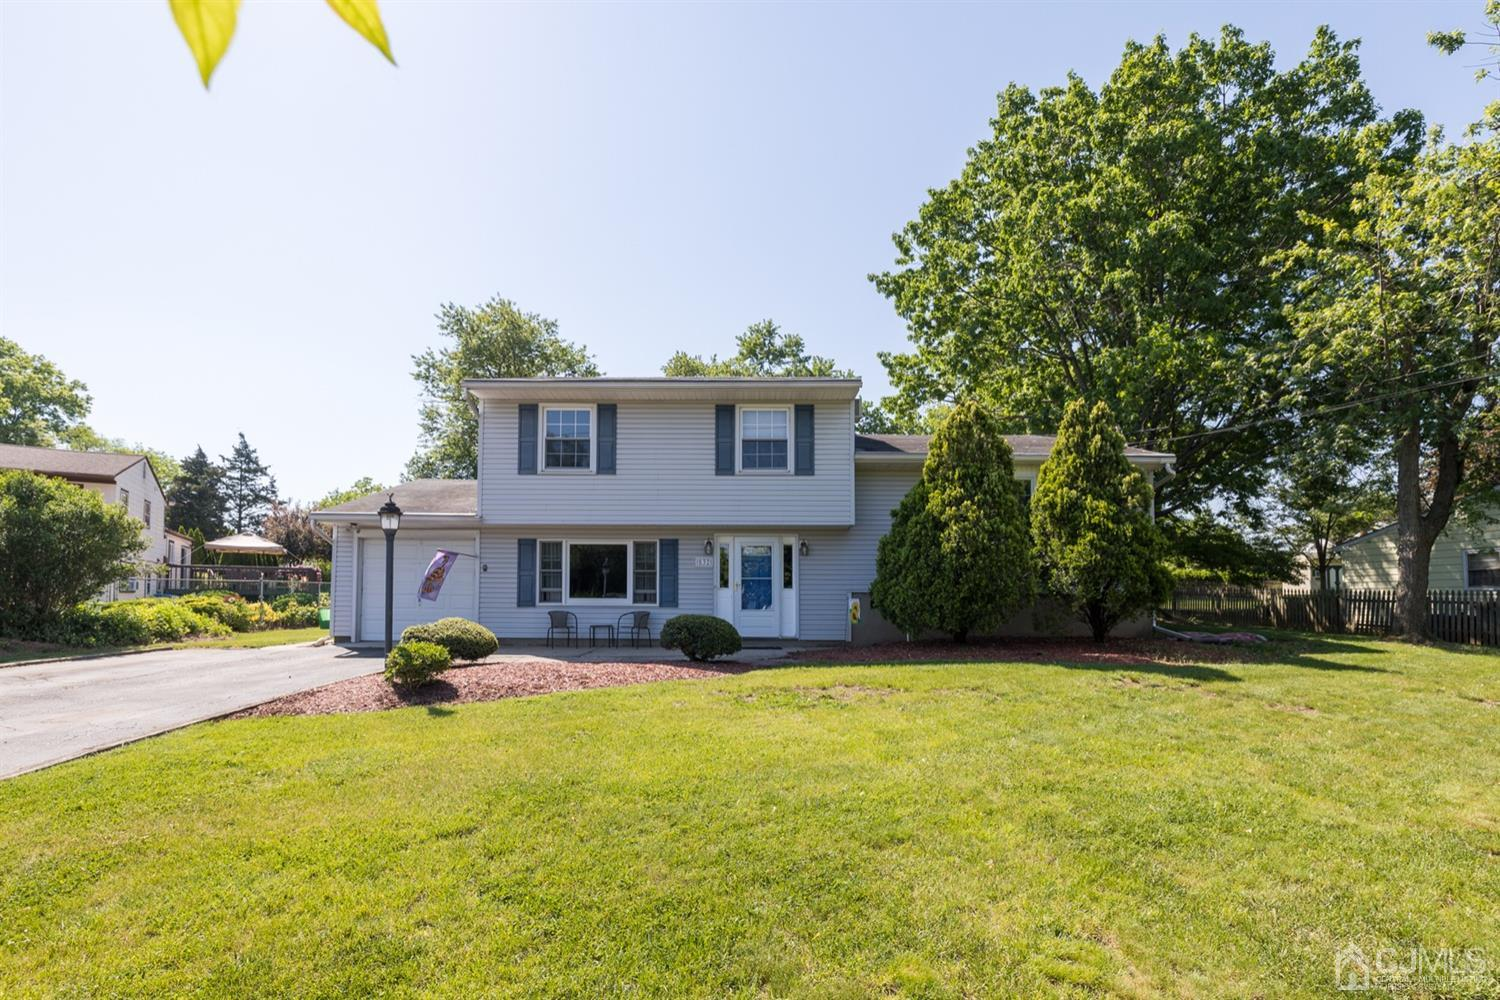 ***Highest & Best Due Friday June 4th 5PM***  HOME SWEET HOME!! Splendid 4 BR 2 Bath Split-Level in prime Rutgers location, Great Neighborhood near Schools, Parks & Transportation! Open Kitchen with all appliances incl., DR w/Sliders to Deck overlooking Fenced Yard! 4th Bedroom is currently being used as expanded FR, possible Multi-Generational Suite w/first floor Bathroom. Large Bonus Great Room for even more Living Space & Flexibility! ++Nice Basement could be finished as well!